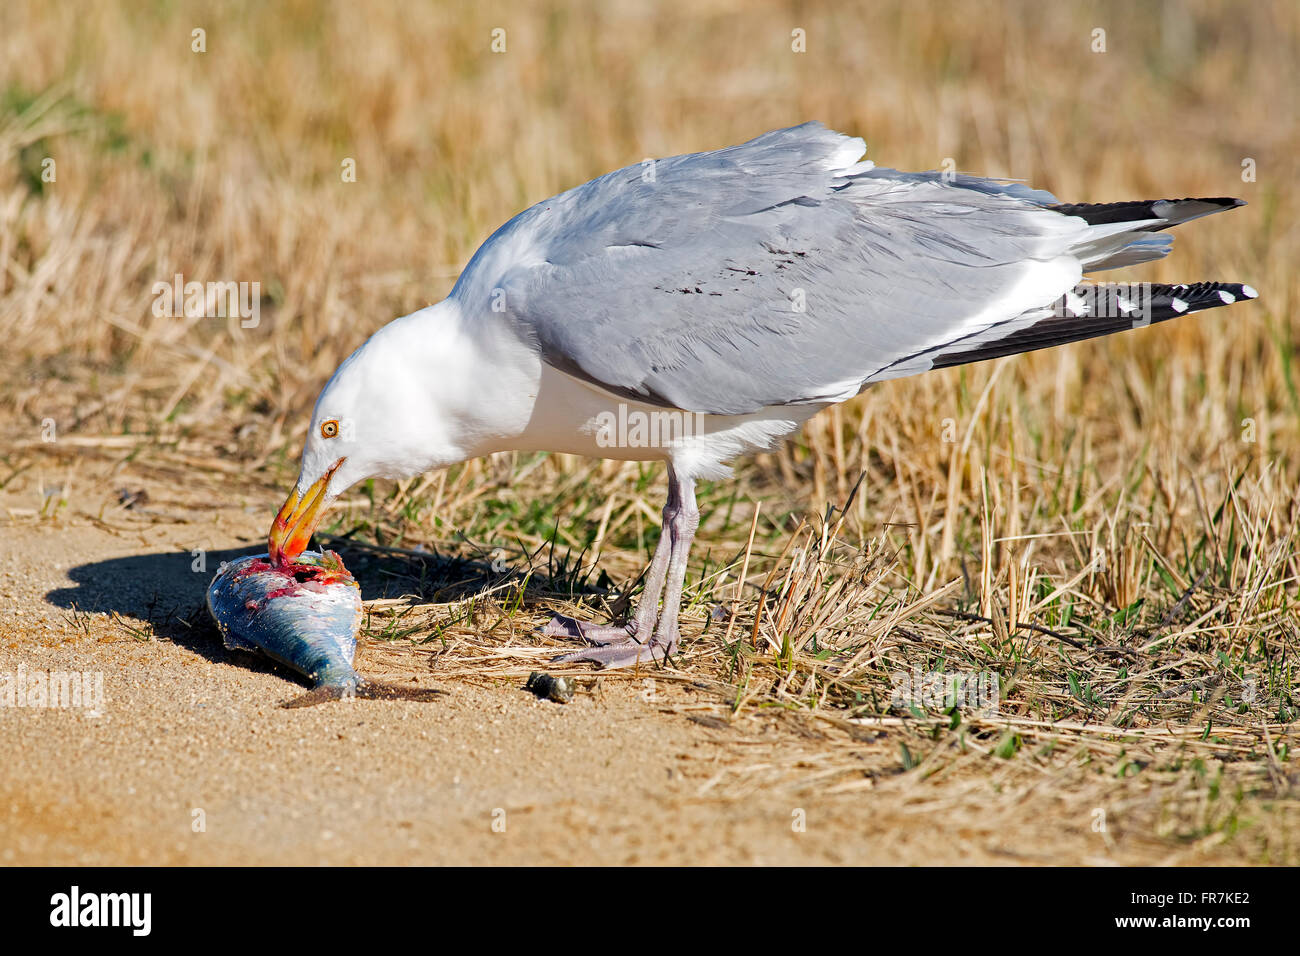 Herring Gull with Large Fish - Stock Image